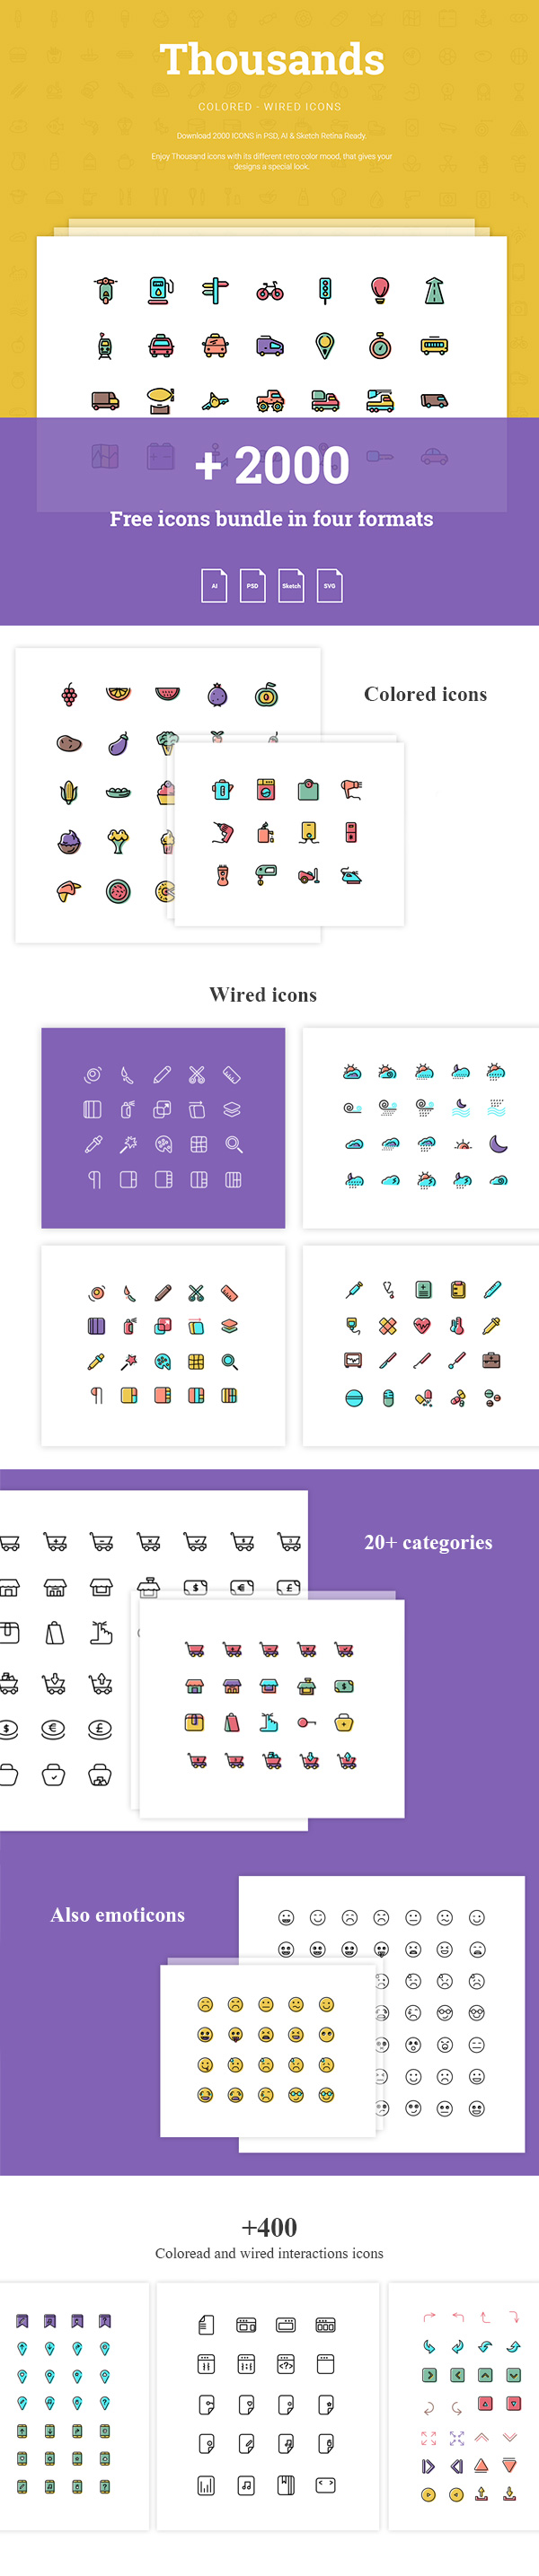 Thousands: 2000+ Free Icons | GraphicBurger